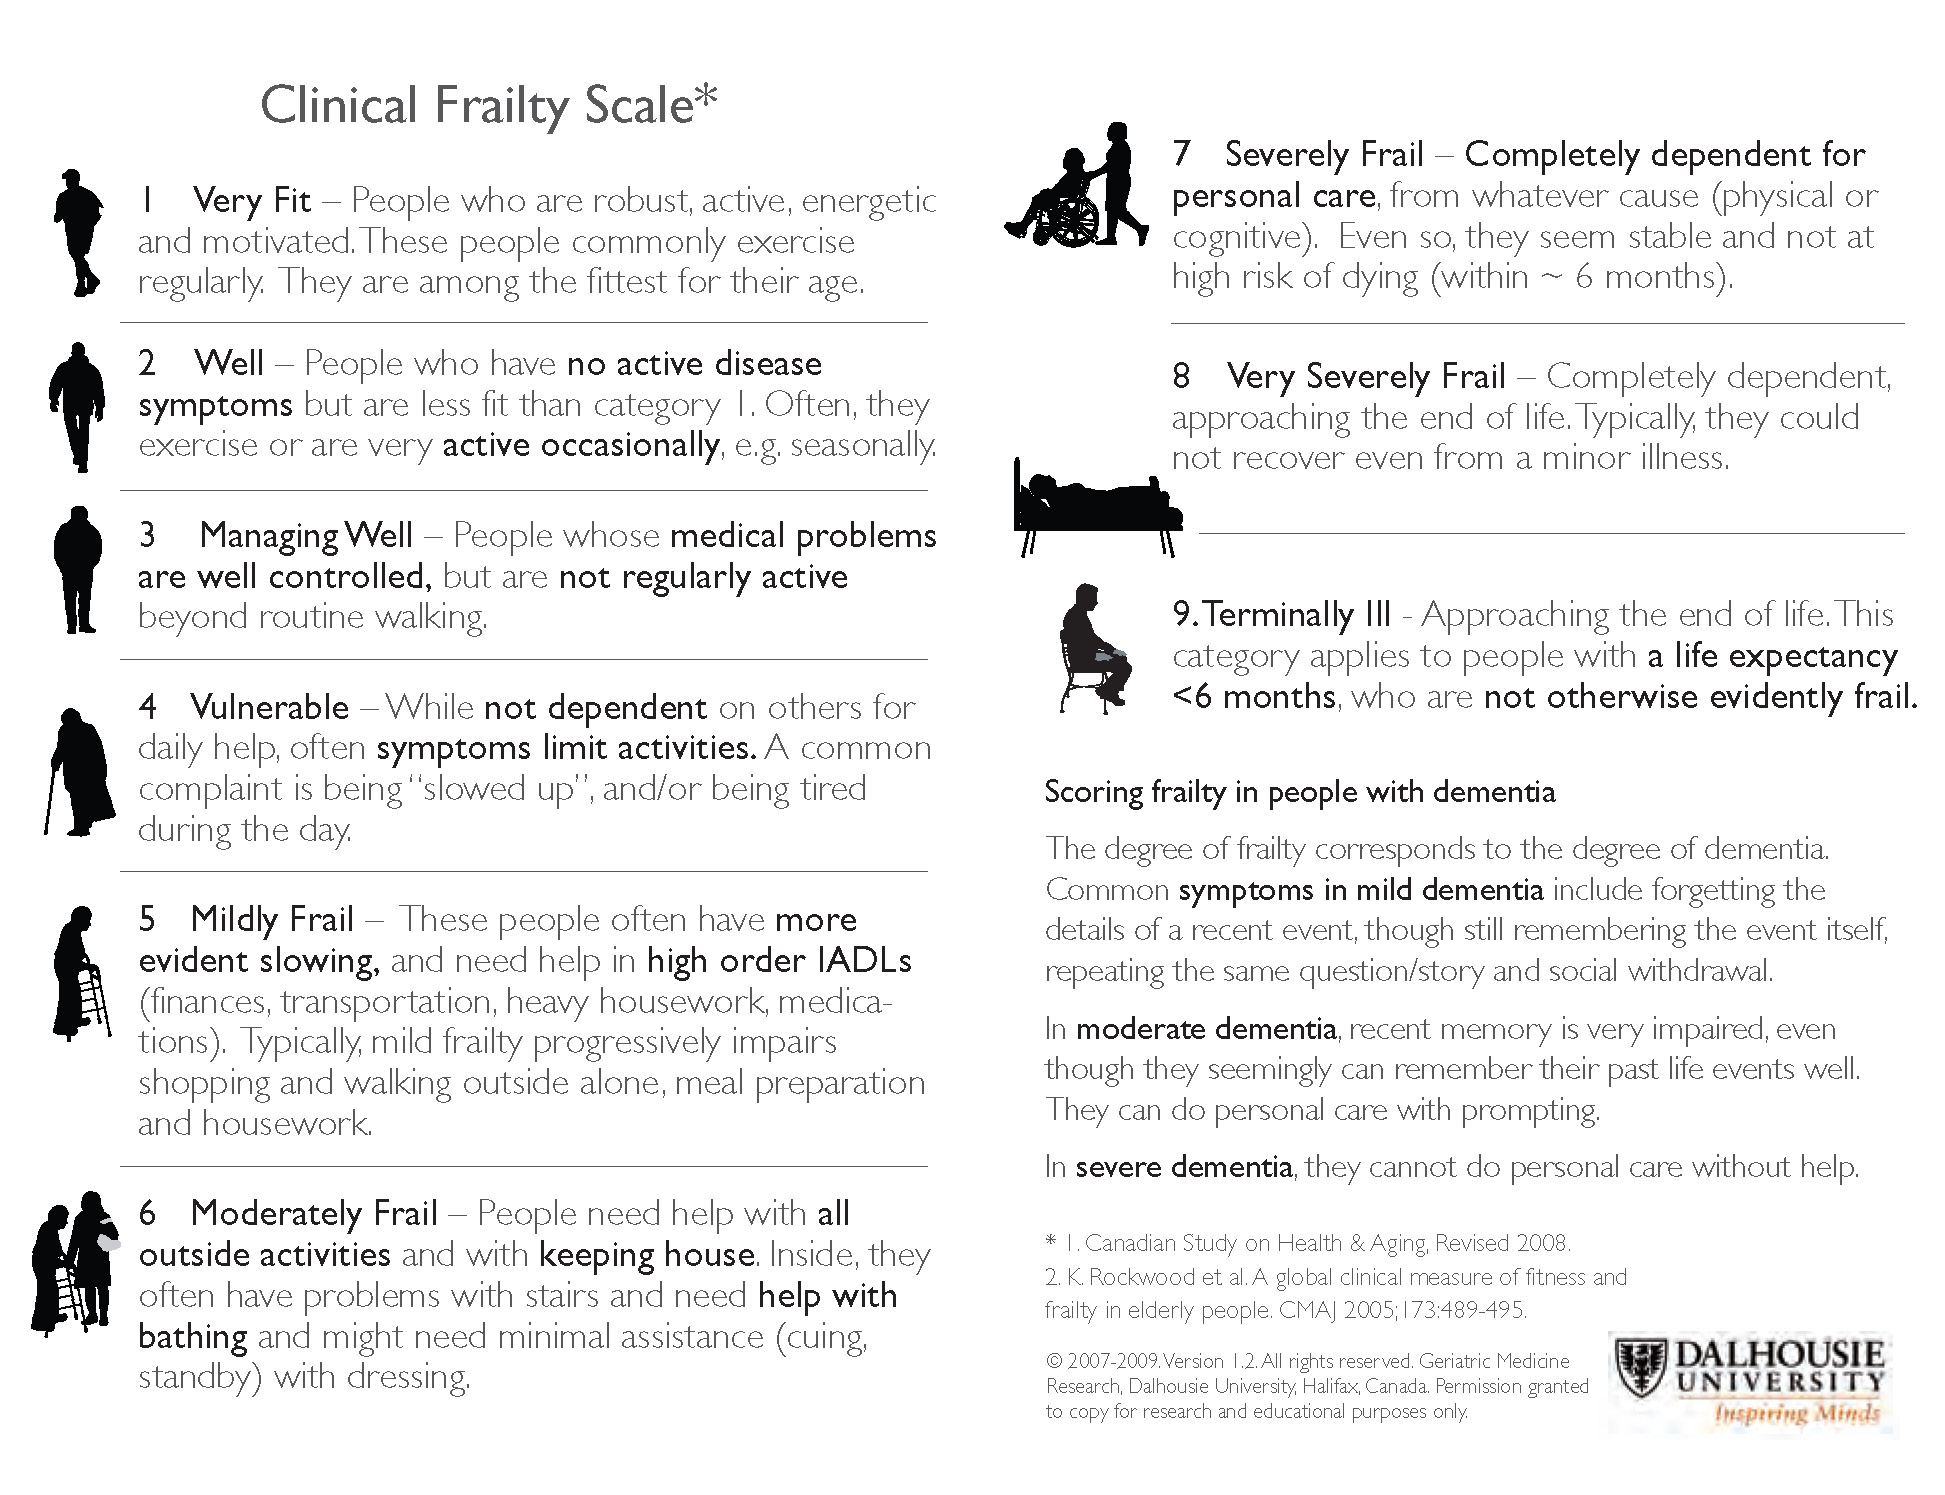 Clinical Frailty Scale